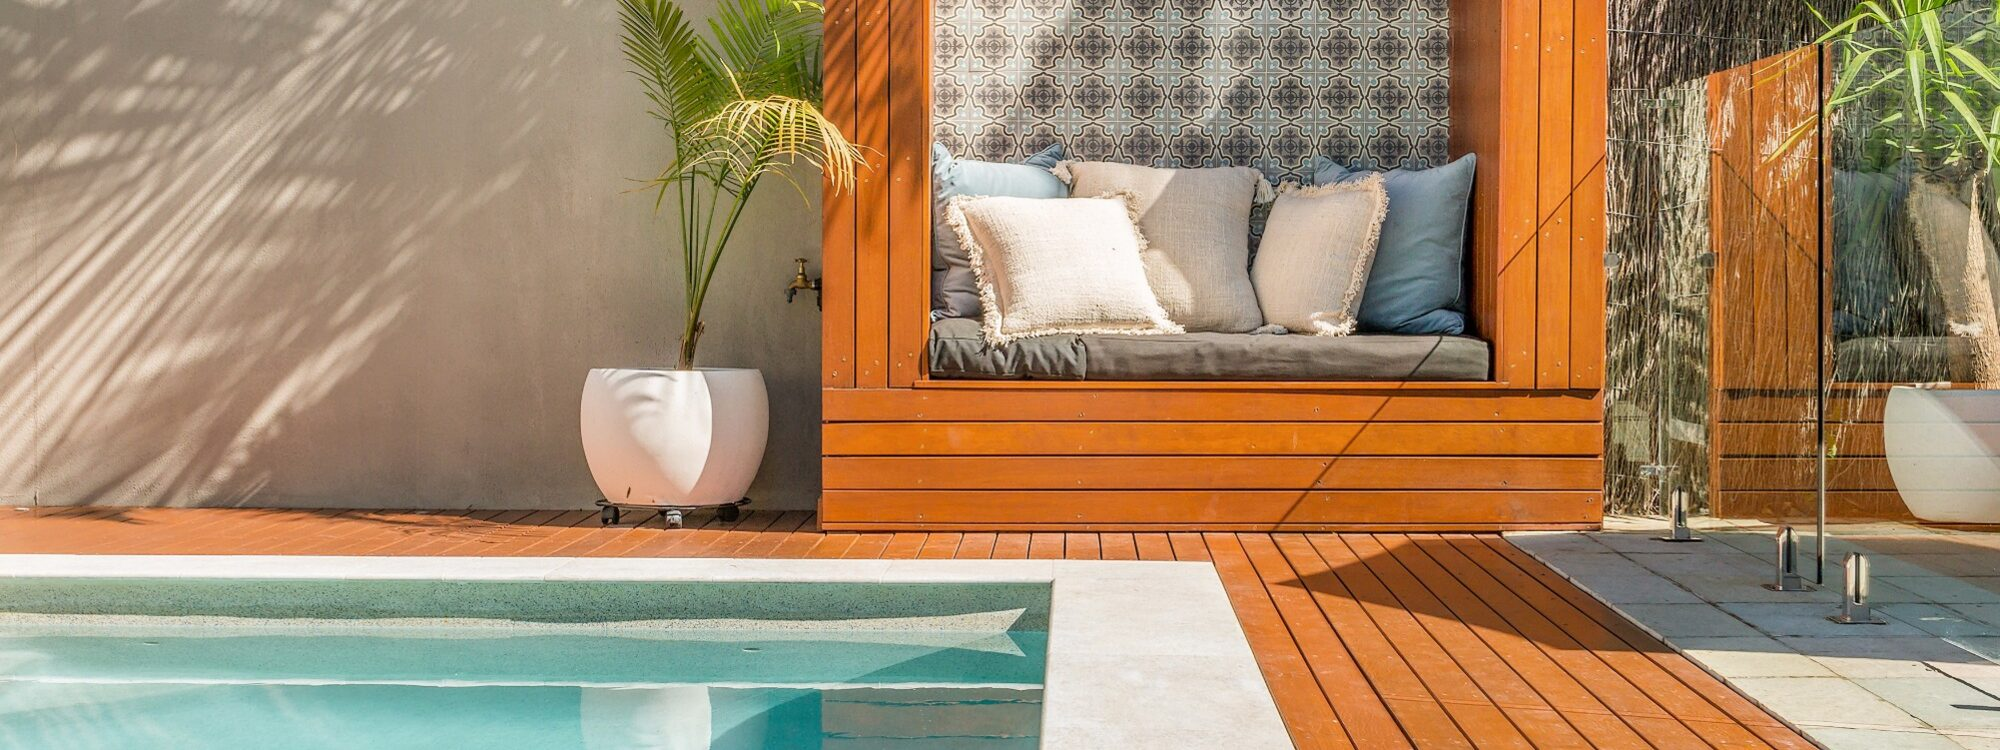 3 Little Pigs - pool and daybed